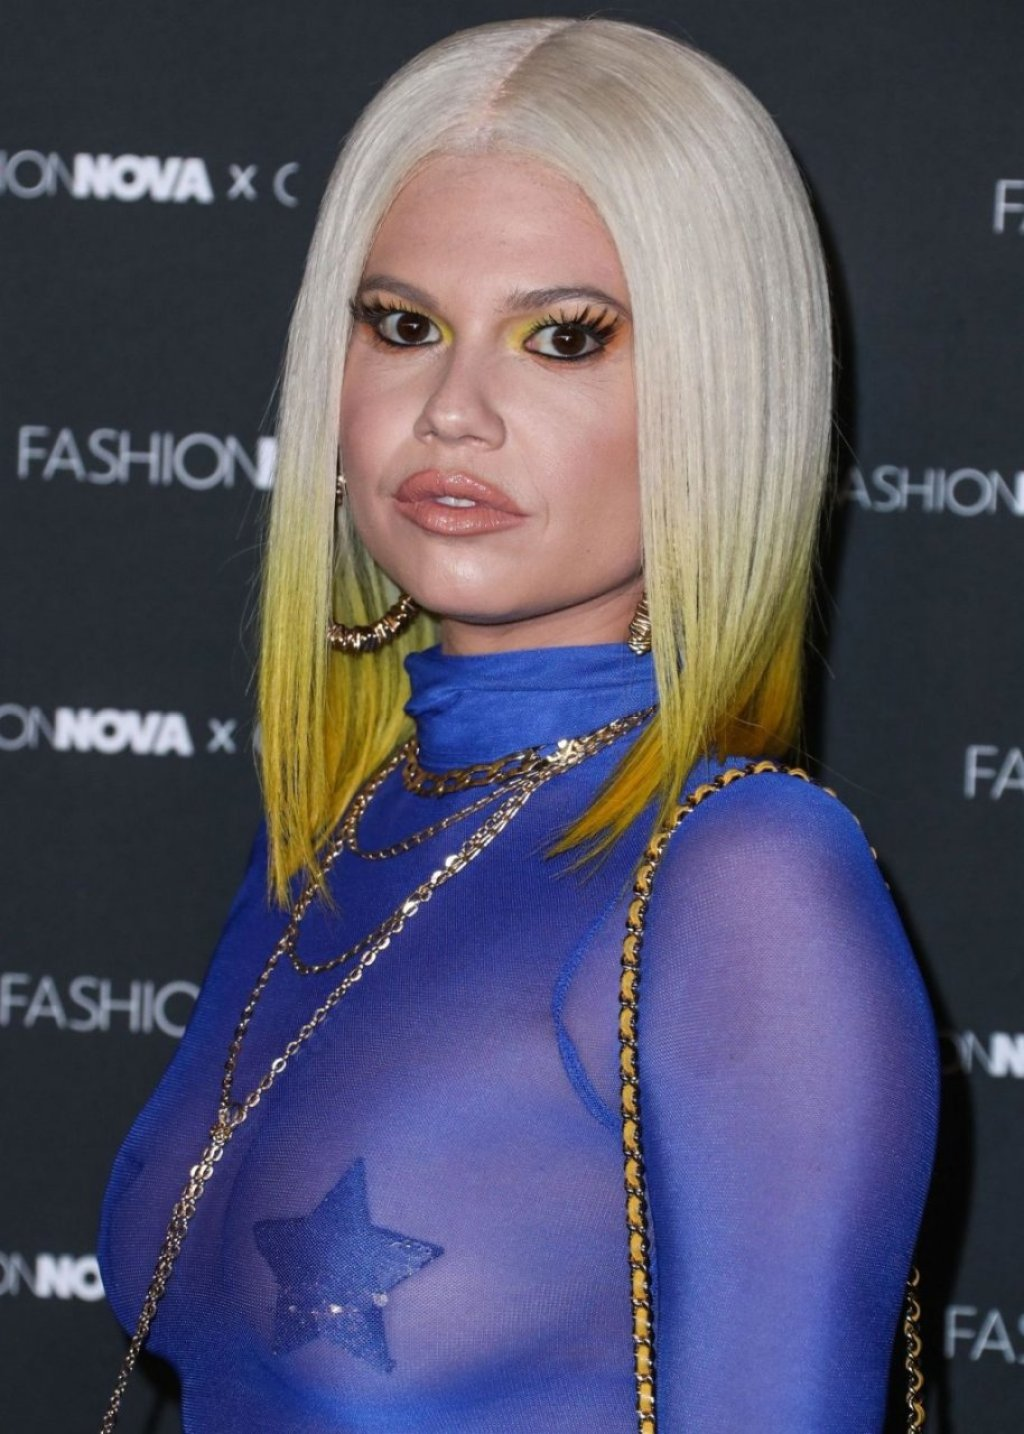 Chanel West Coast Braless (44 Photos)